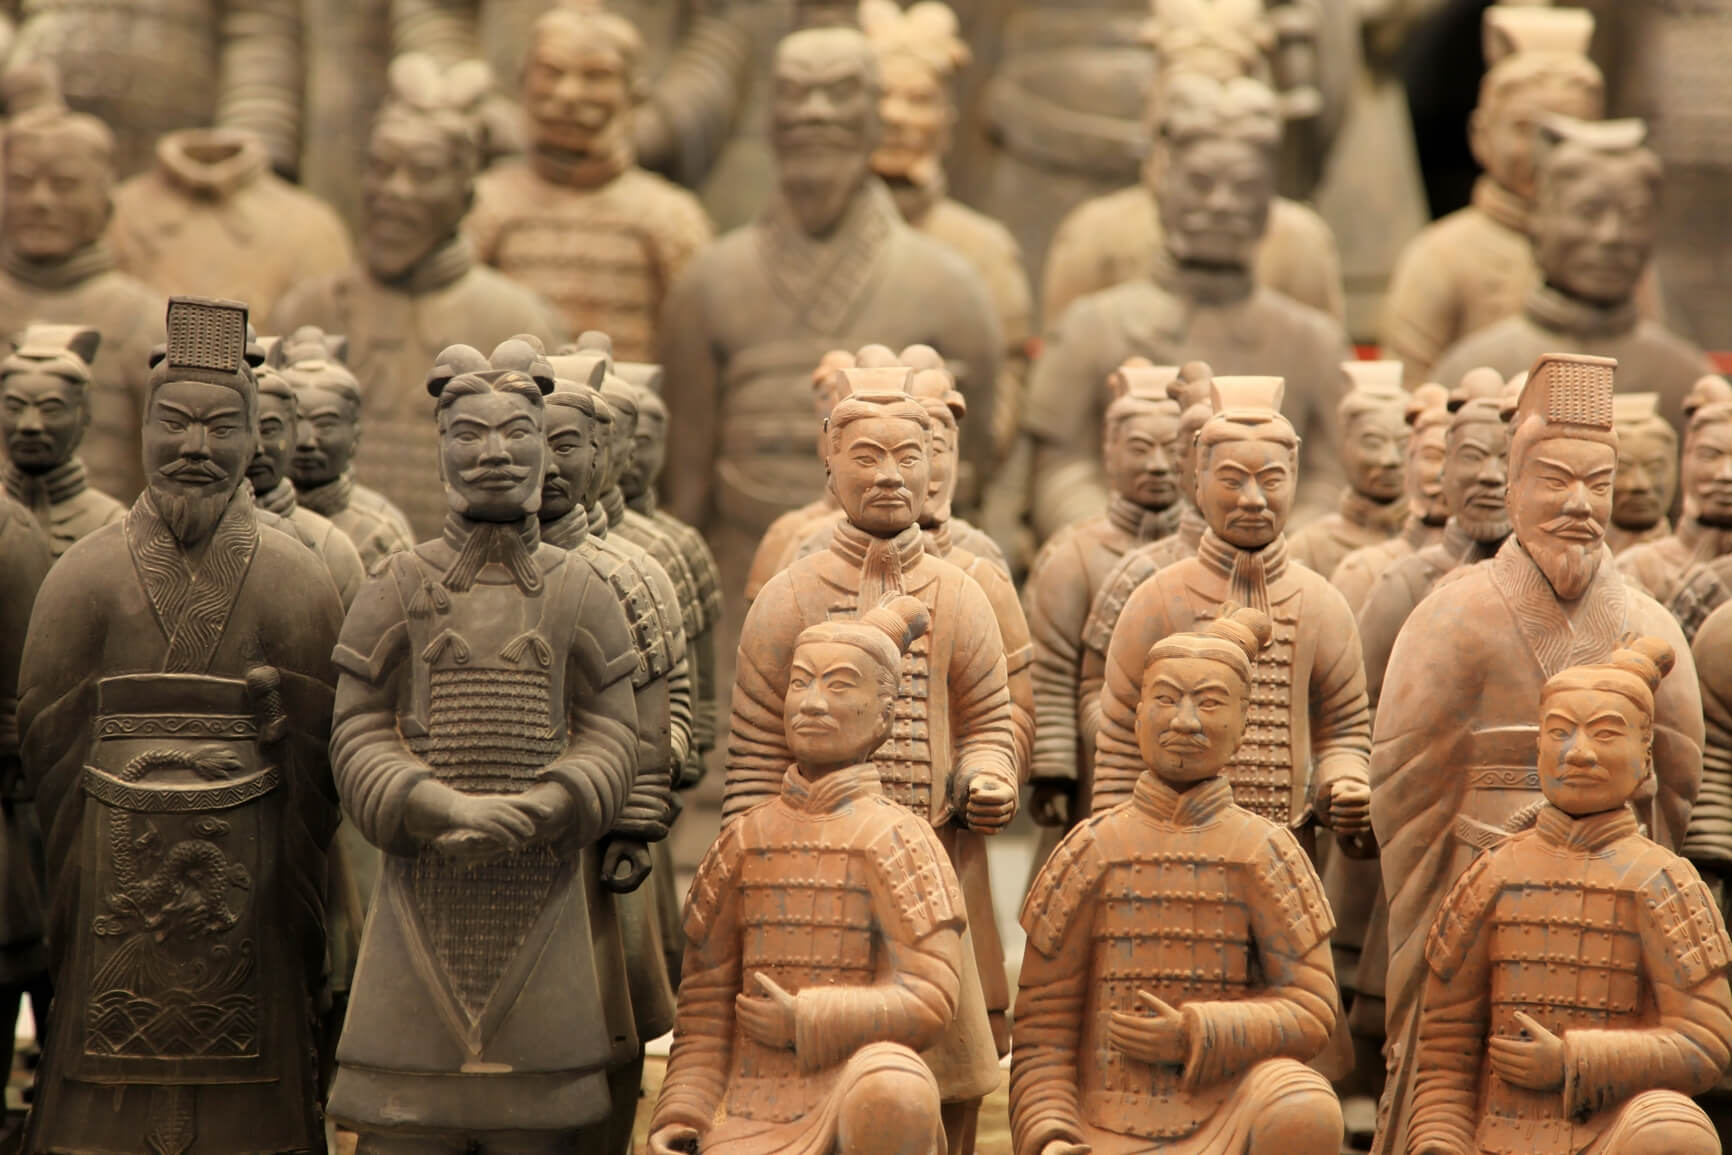 NEW YEAR: Non-stop from Istanbul, Turkey to Xi'an, China for only €338 roundtrip